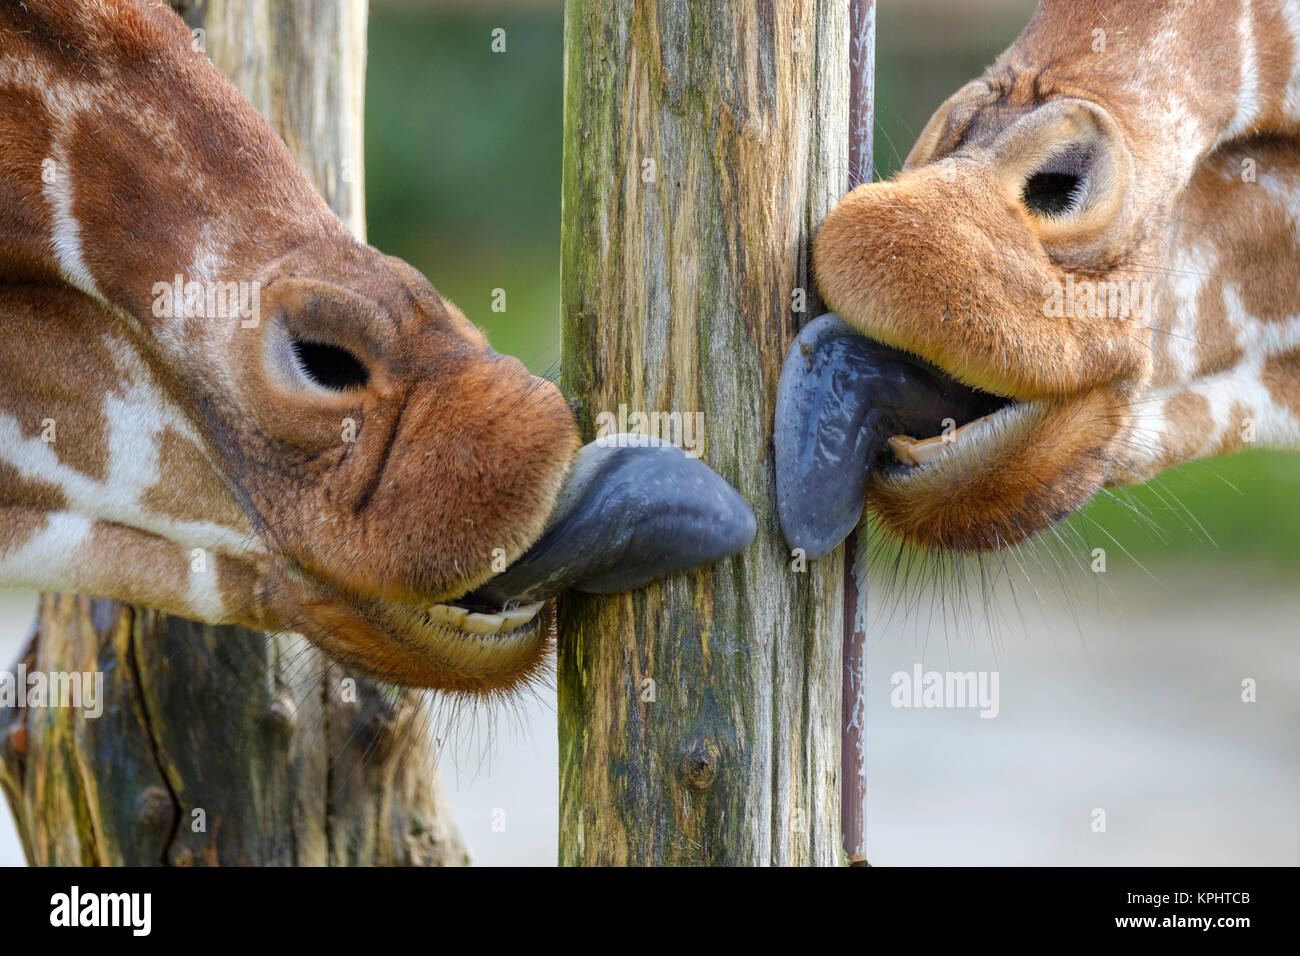 a wooden pole is licked clean by two giraffes - Stock Image